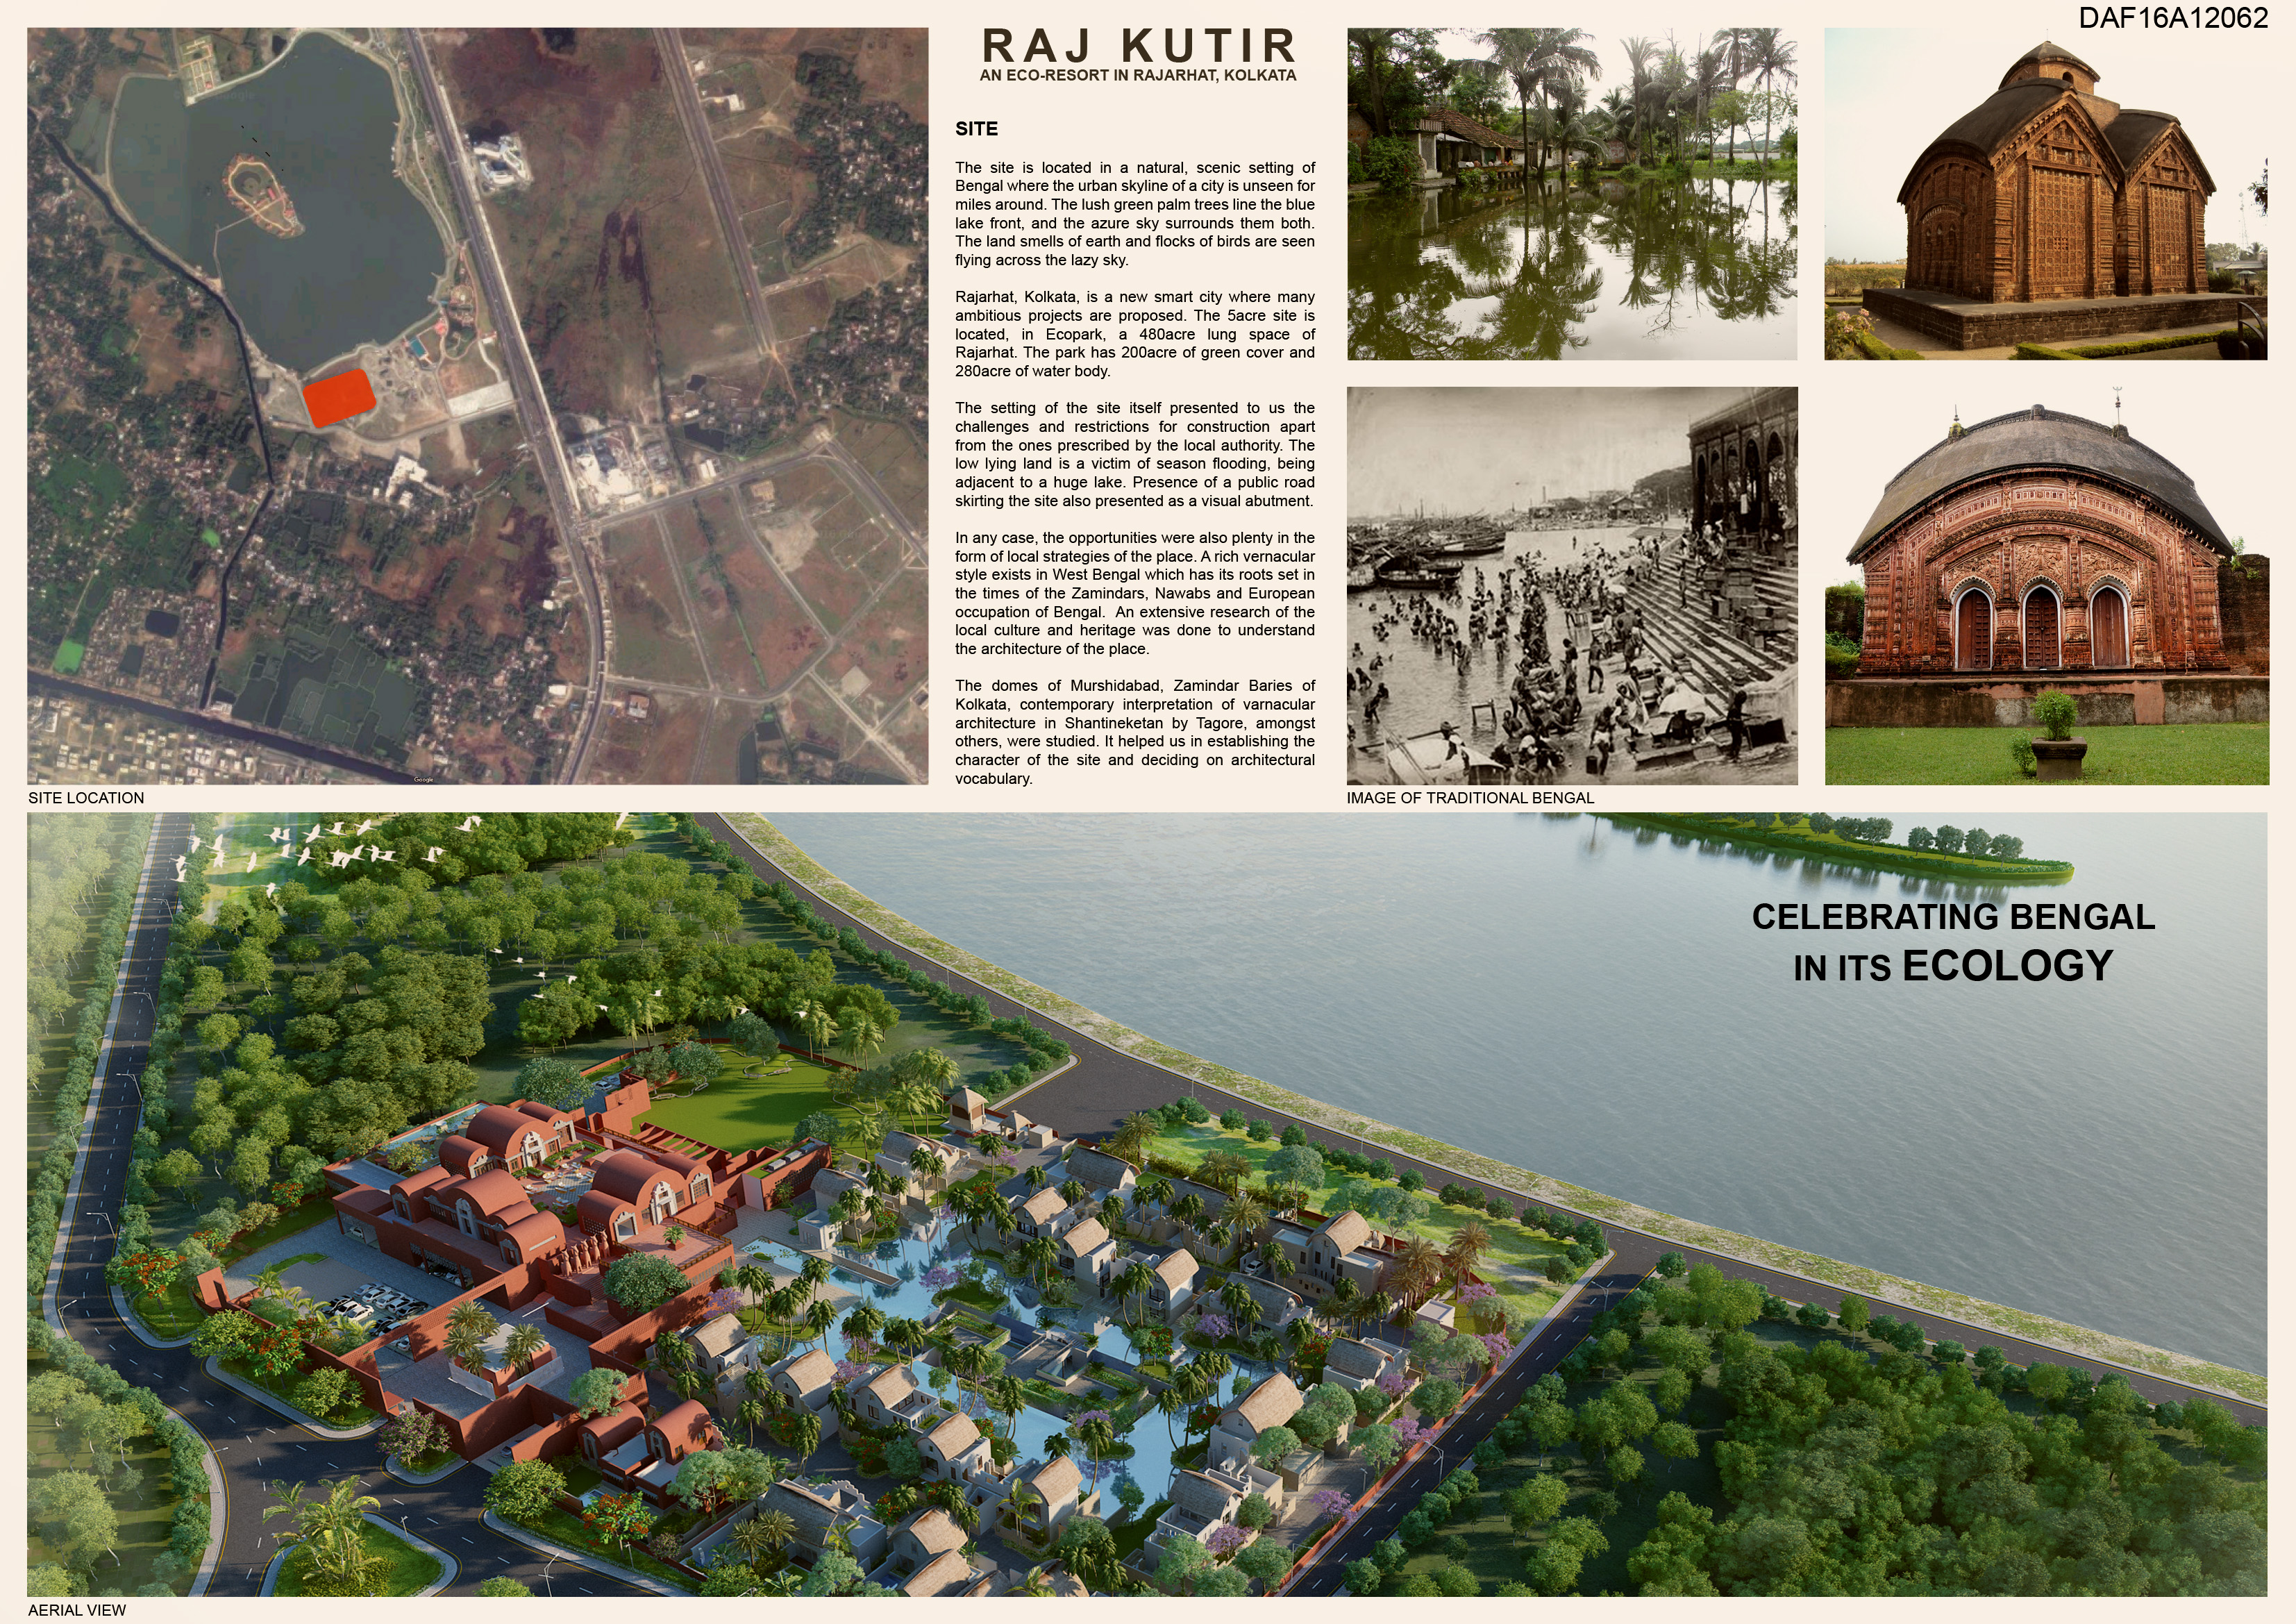 eco resort Rajendra eco resort, gazipur: see 17 traveler reviews, 49 candid photos, and great deals for rajendra eco resort, ranked #5 of 10 b&bs / inns in gazipur and rated 35 of 5 at tripadvisor.